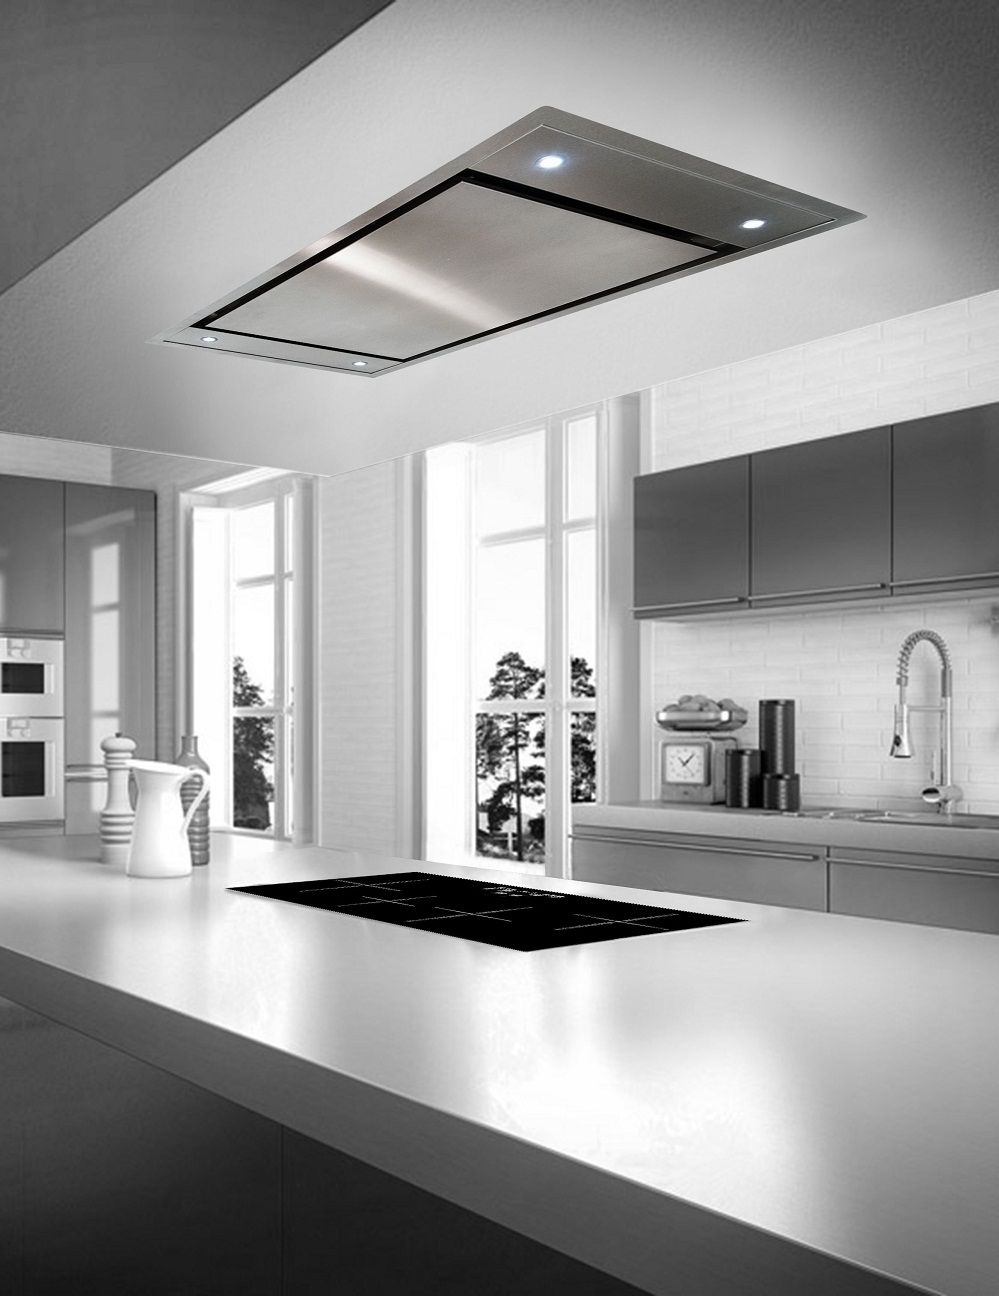 Ceiling Recessed Kitchen Extractor Fan Kitchen Extractor Ceiling Fan In Kitchen Kitchen Hoods